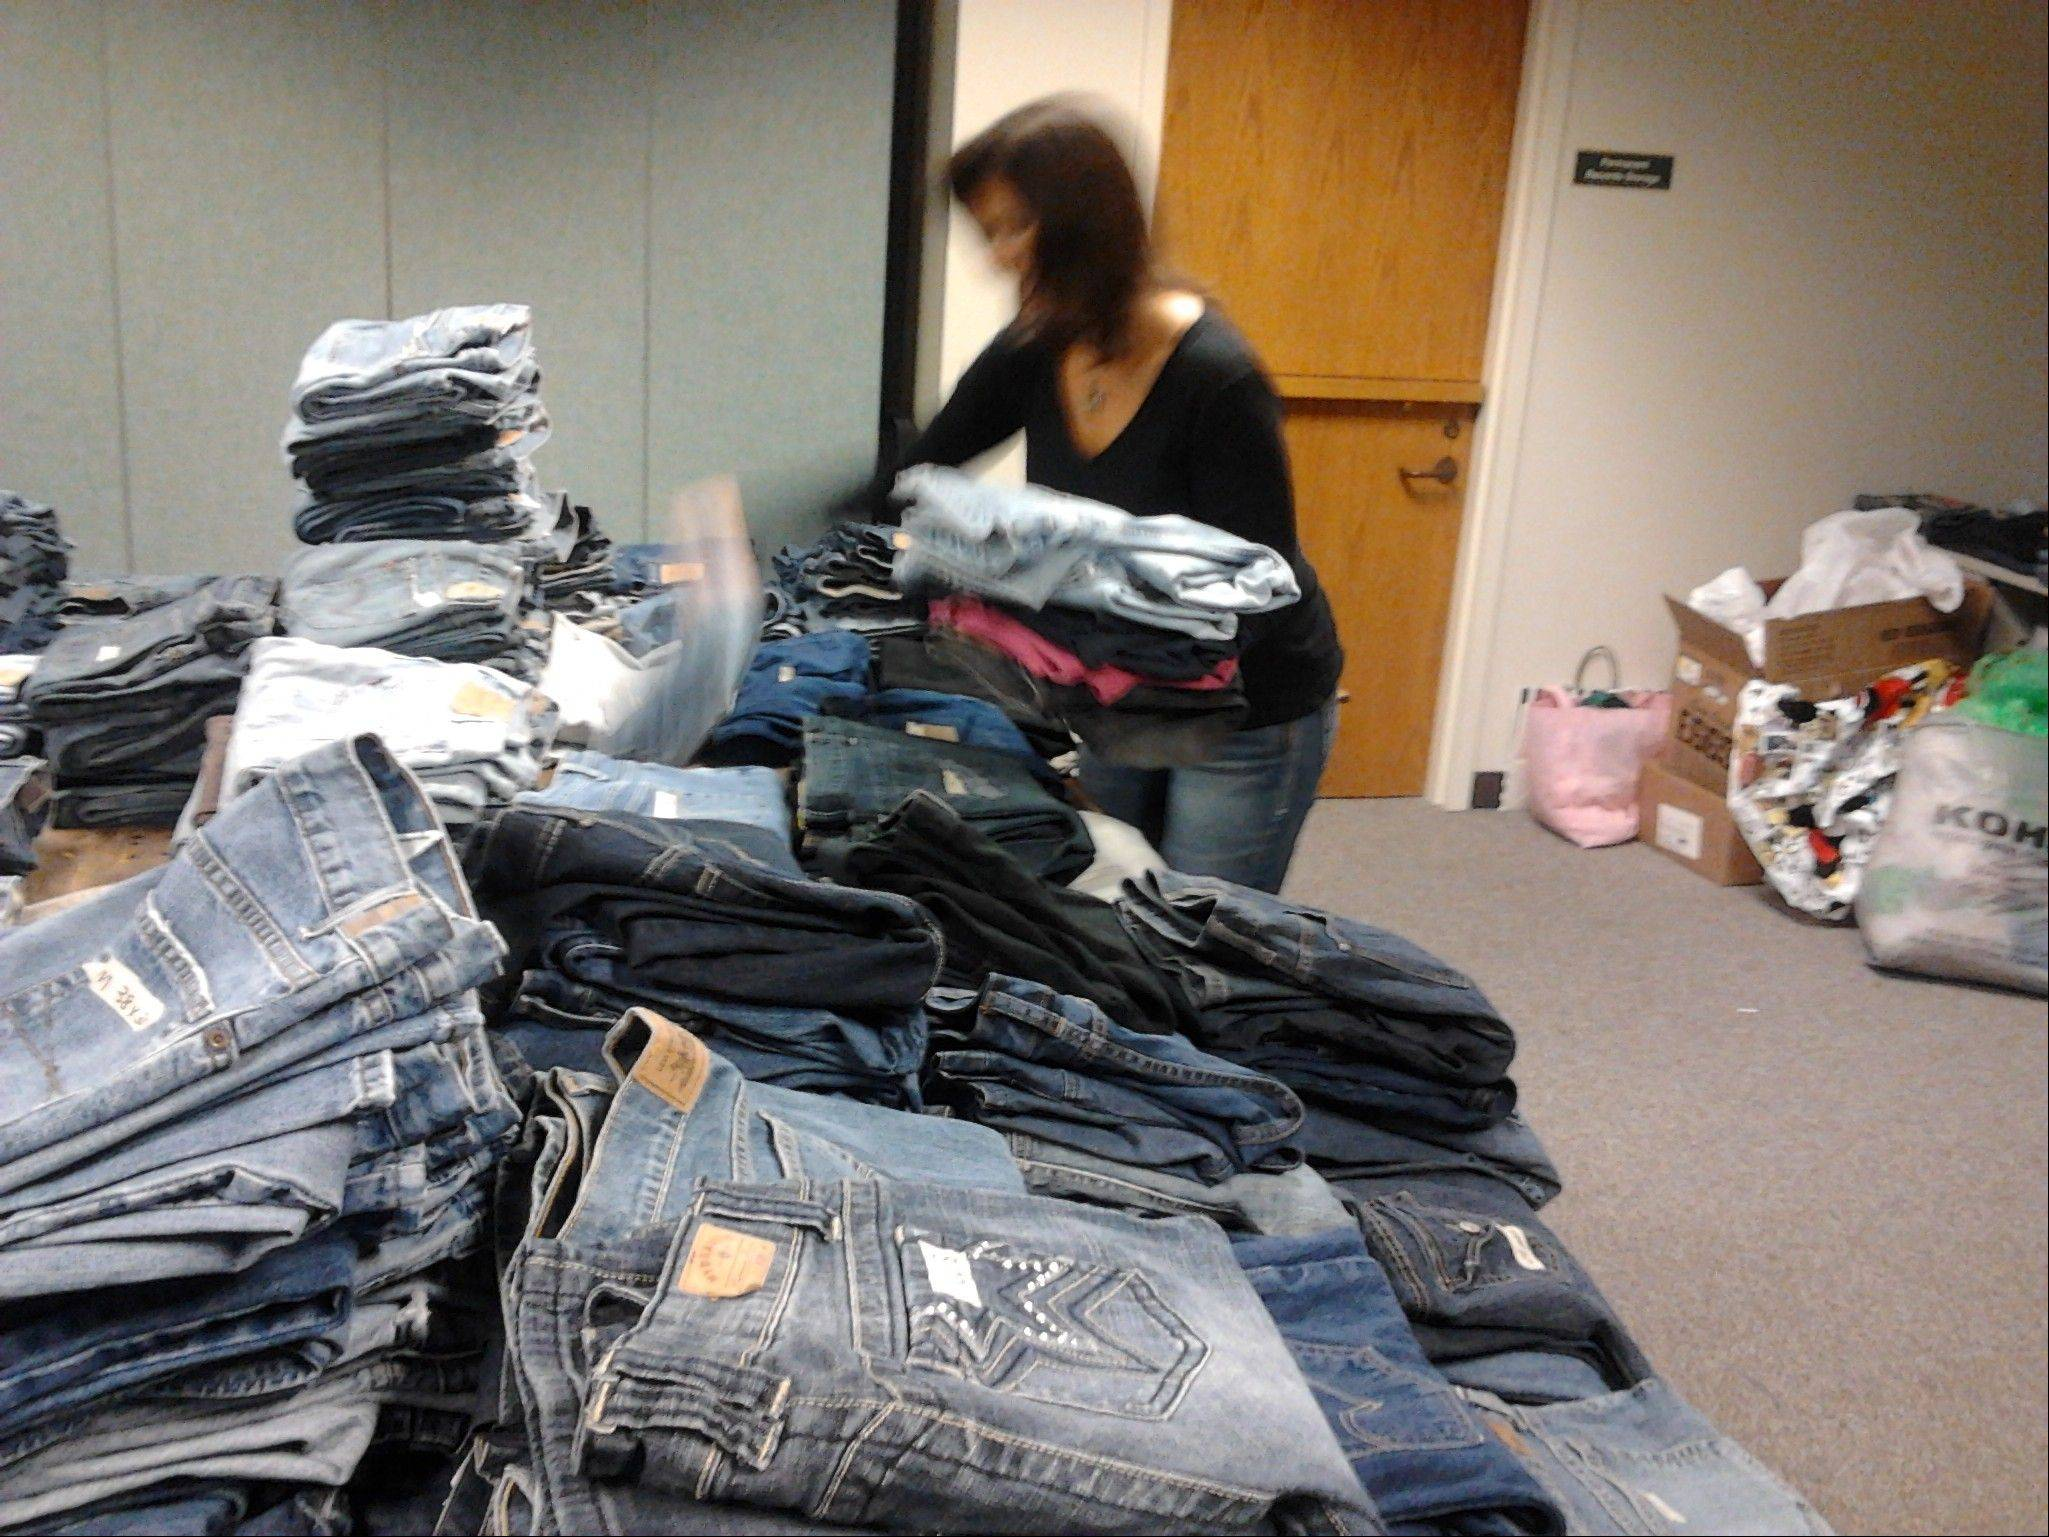 Susan Miller led a volunteer effort to provide about 1,000 pairs of donated jeans at no cost to those in need who visited the ministry center Thursday night at Lake Zurich�s St. Francis de Sales Parish.